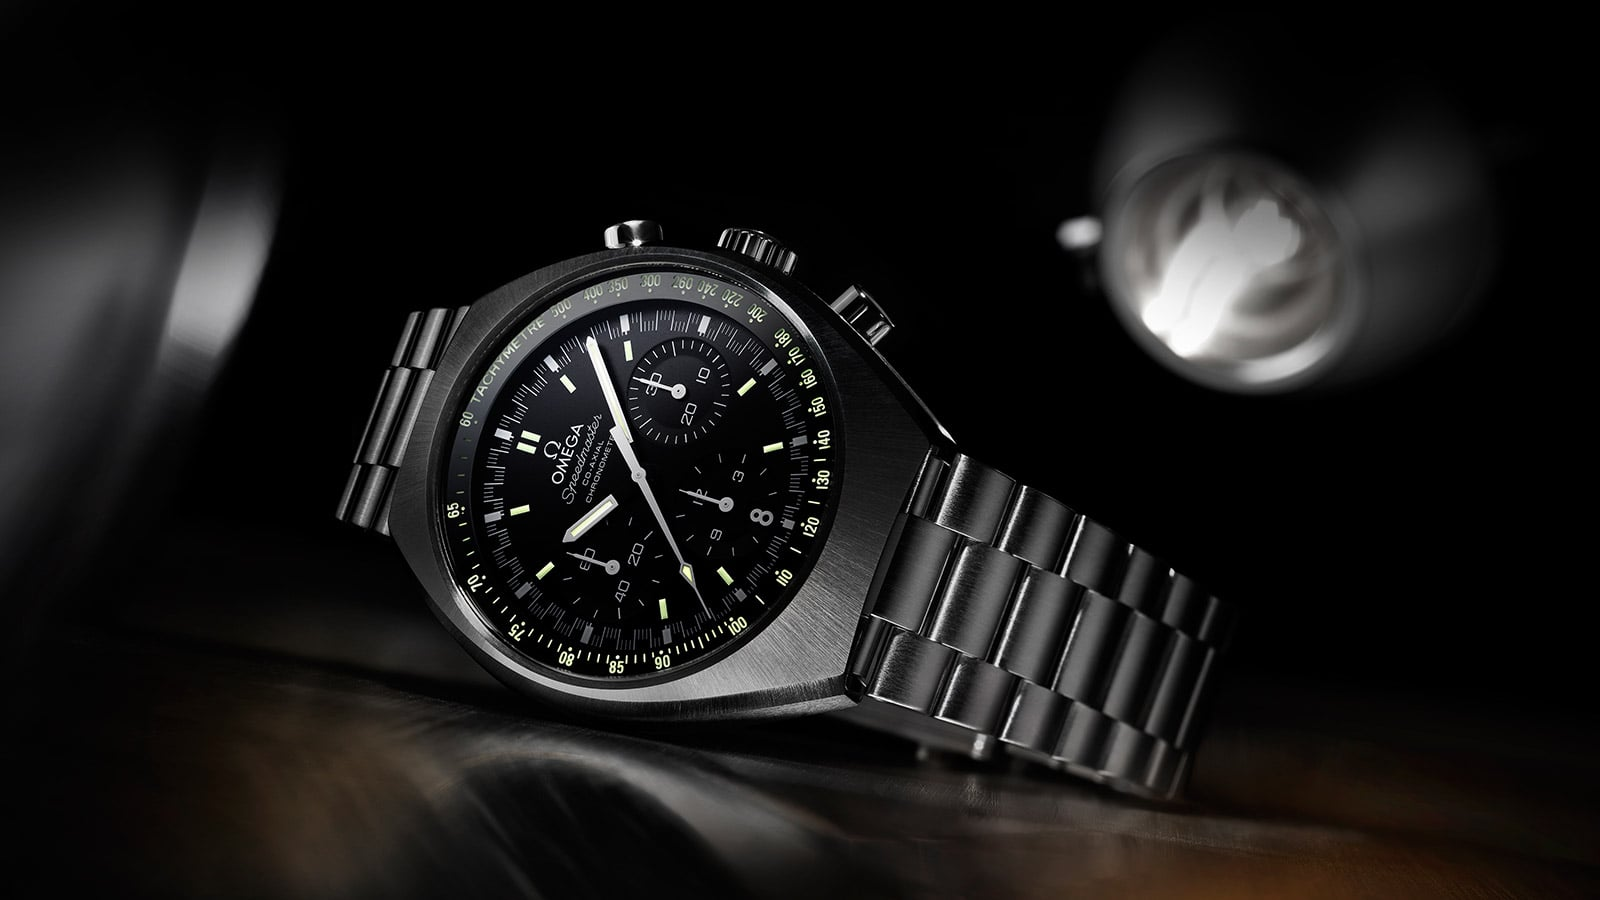 OMEGA SPEEDMASTER MARK II with black dial and white hands